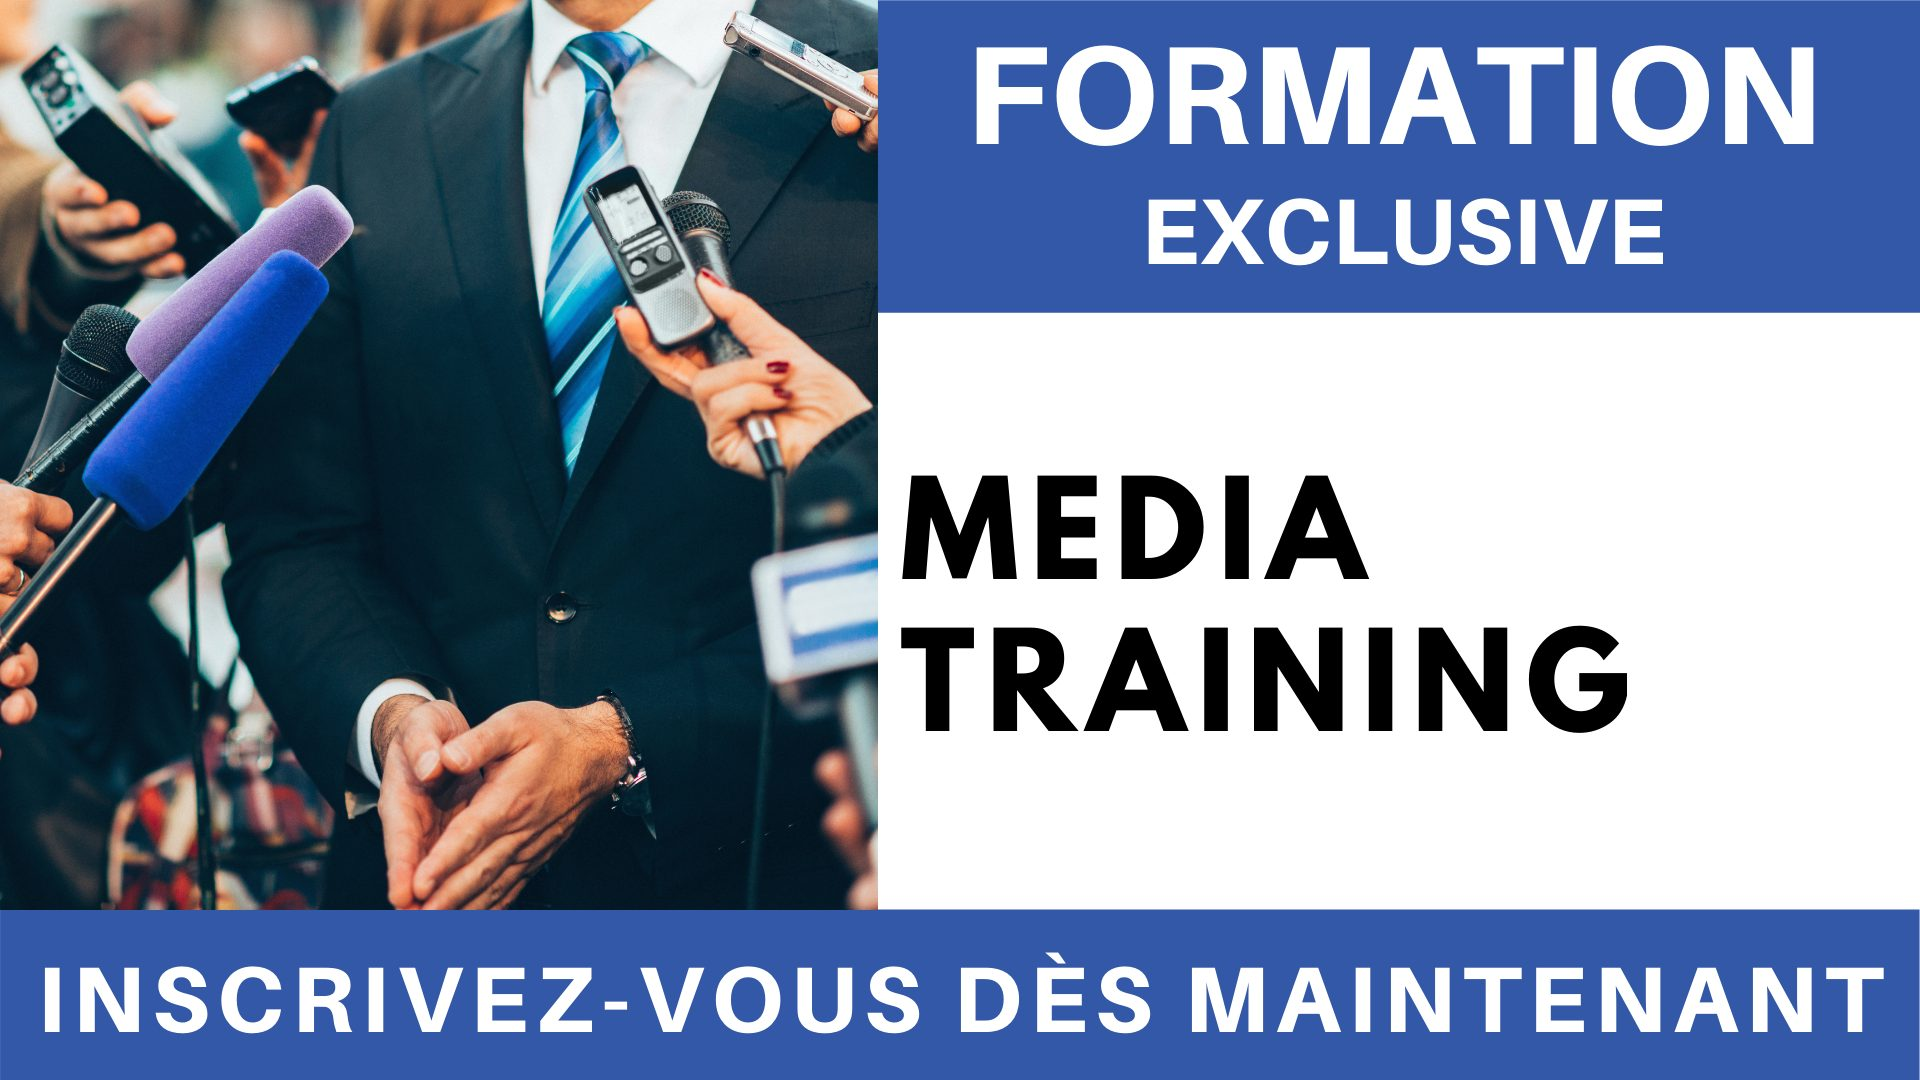 Formation Exclusive - Media training